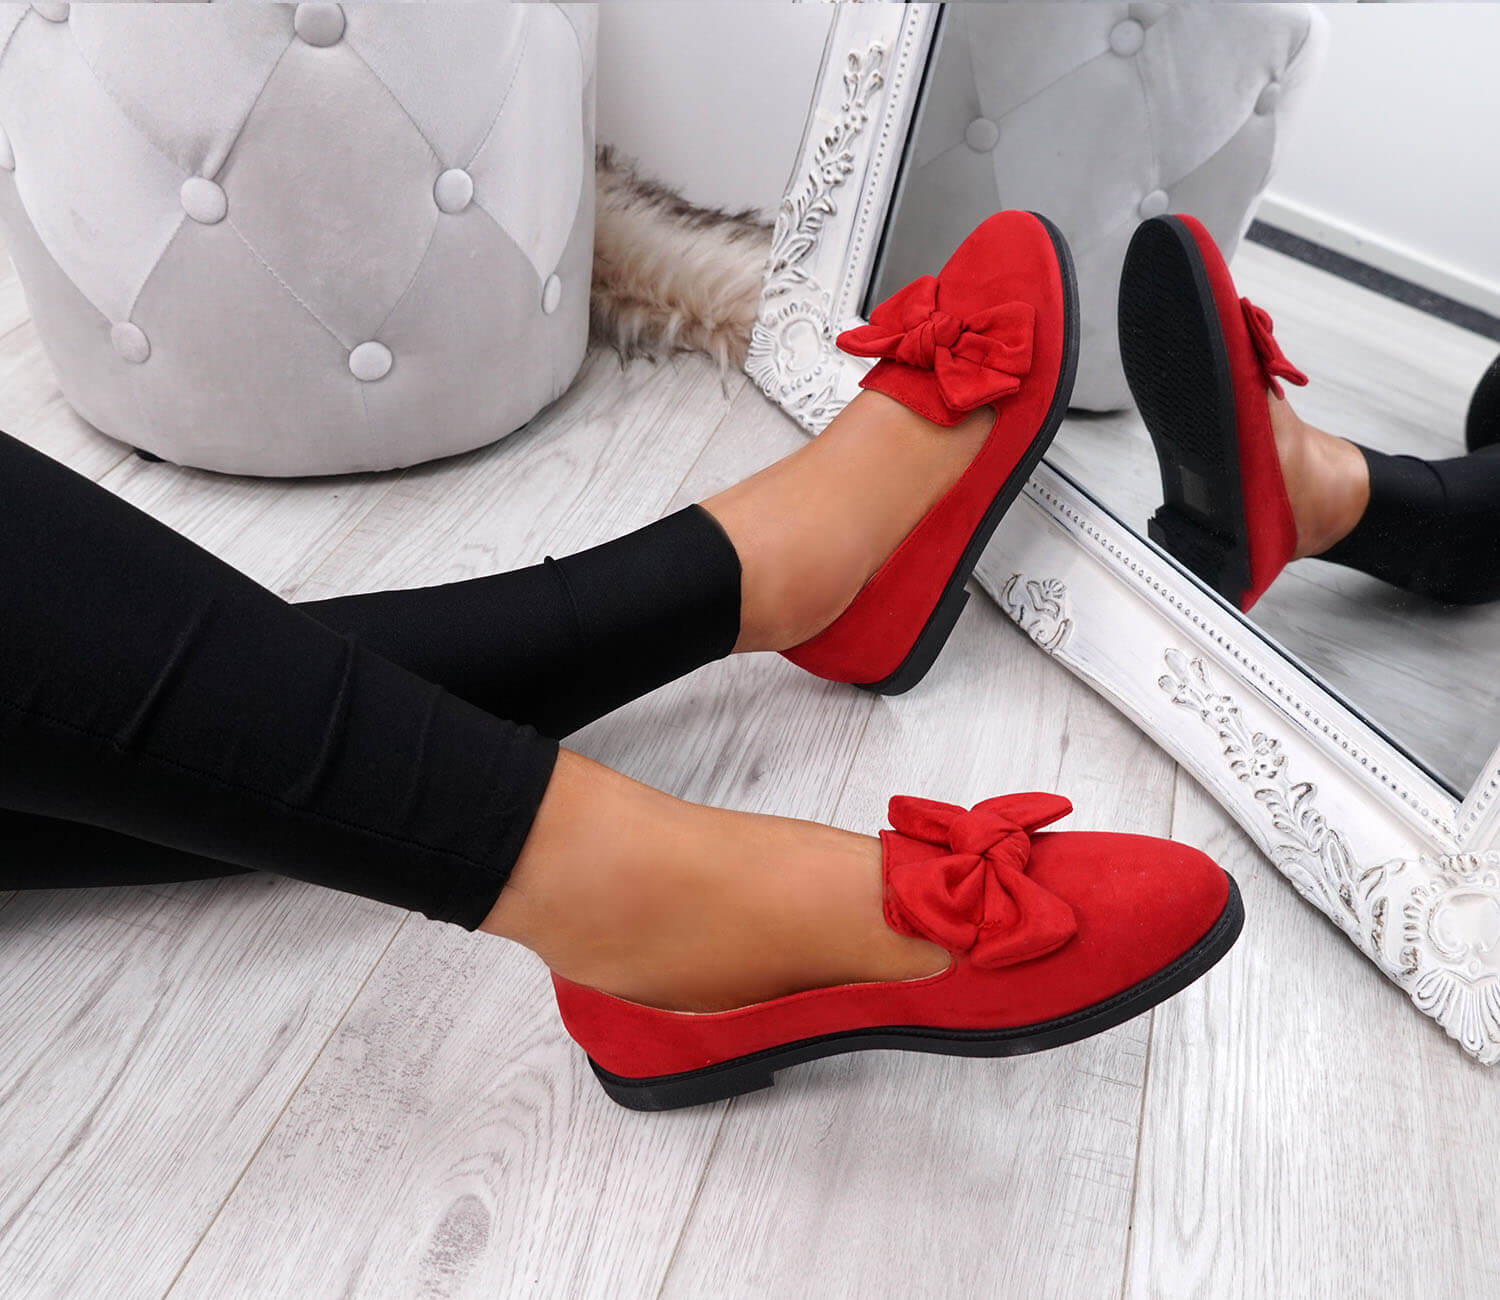 WOMENS-LADIES-BOW-BALLERINA-PUMPS-FLATS-SLIP-ON-BALLET-CASUAL-WORK-SHOES-SIZE thumbnail 33